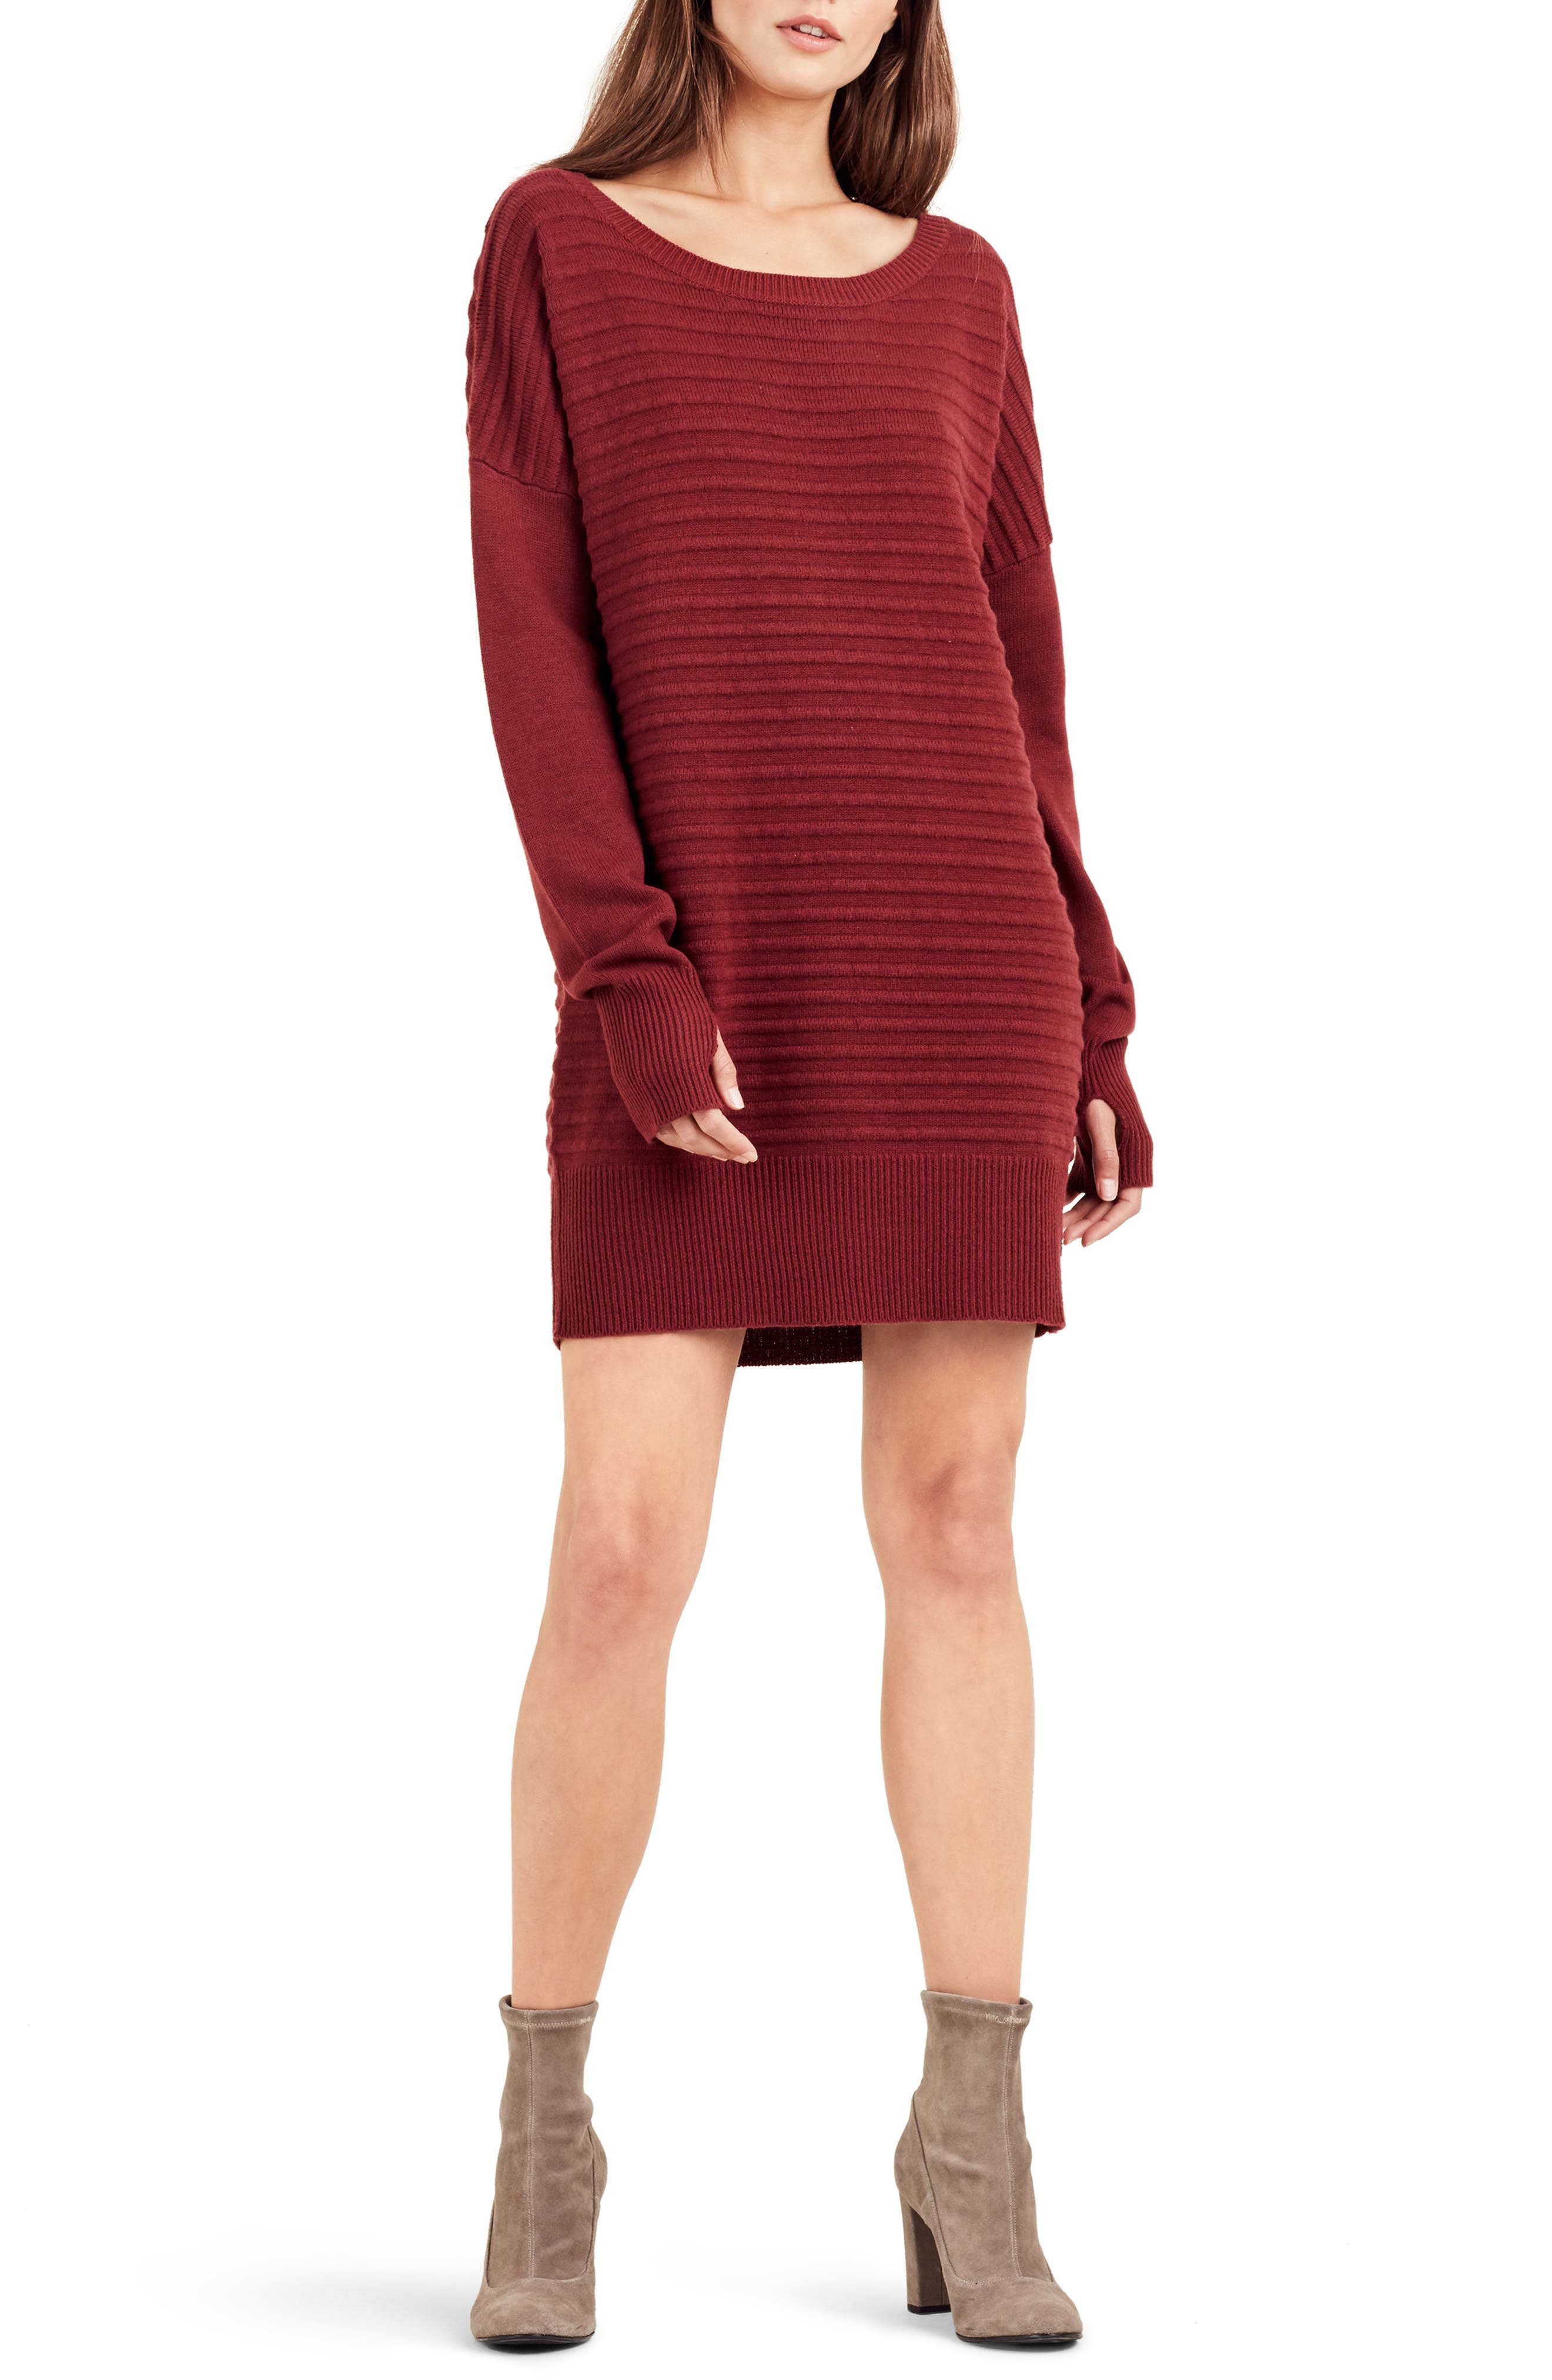 True Religion Brand Jeans Dolman Sweater Dress